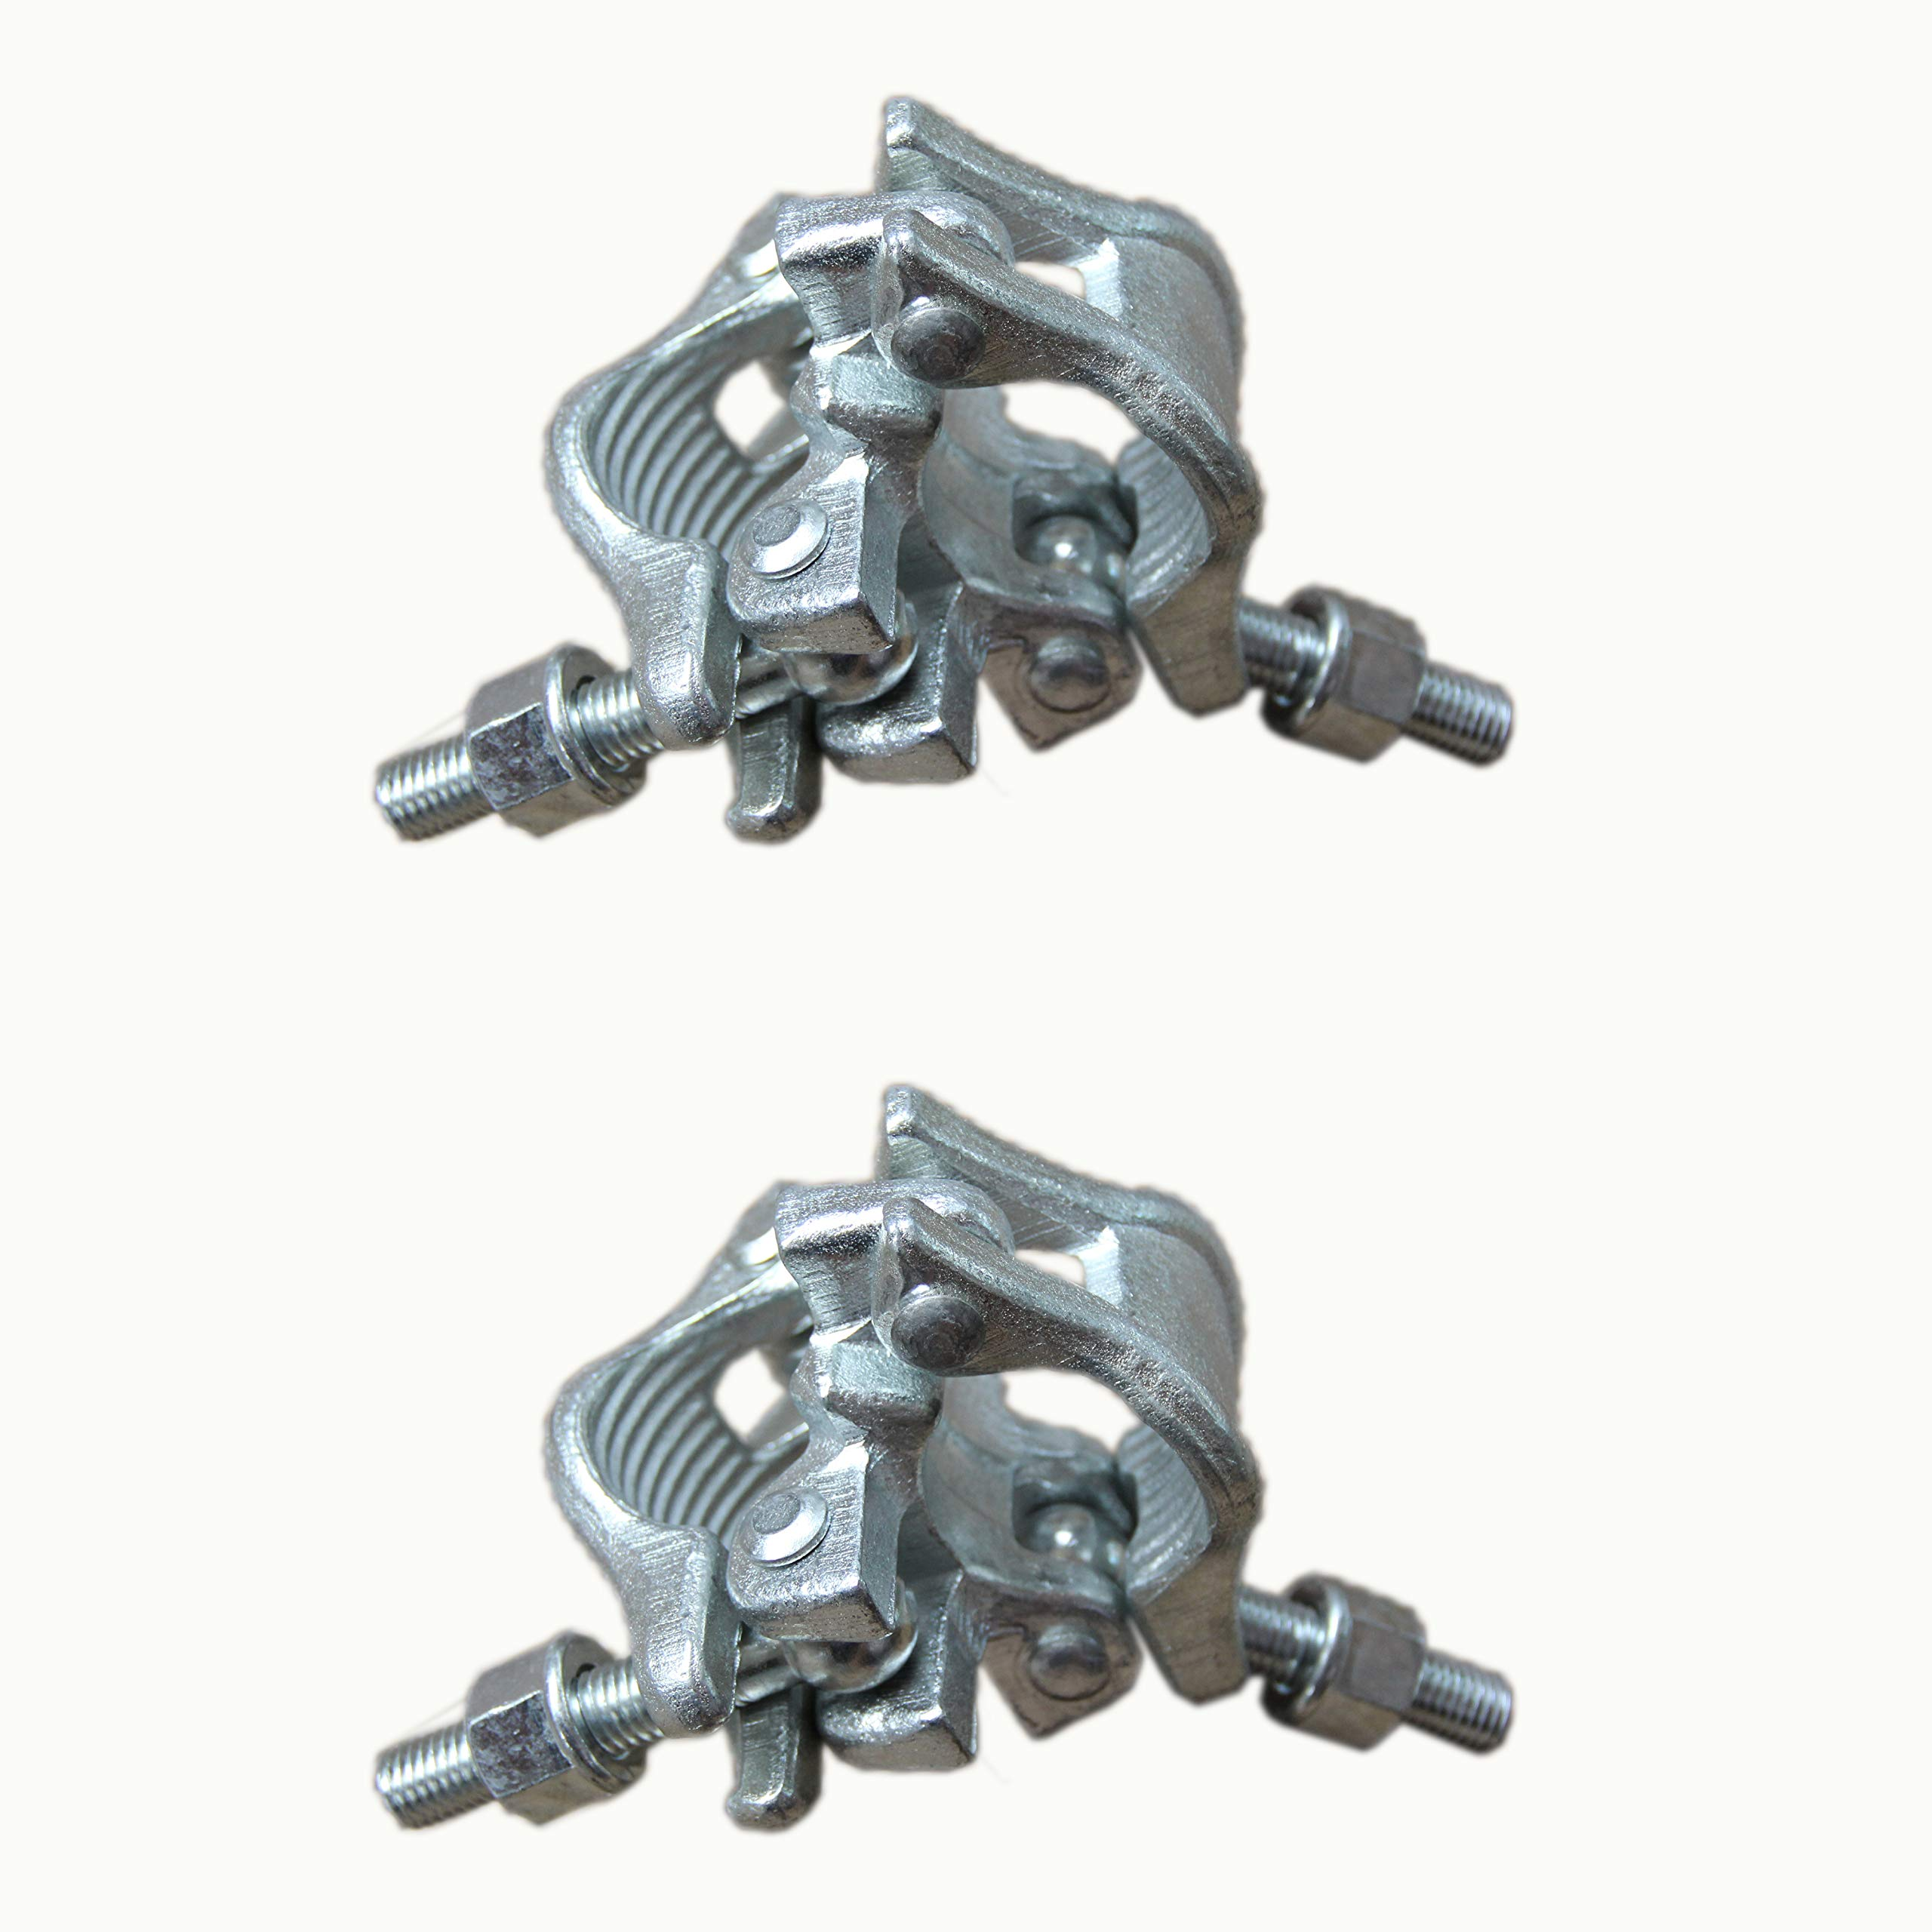 Fixed Right Angle Scaffolding Clamps 2 pcs Brand New Prisms